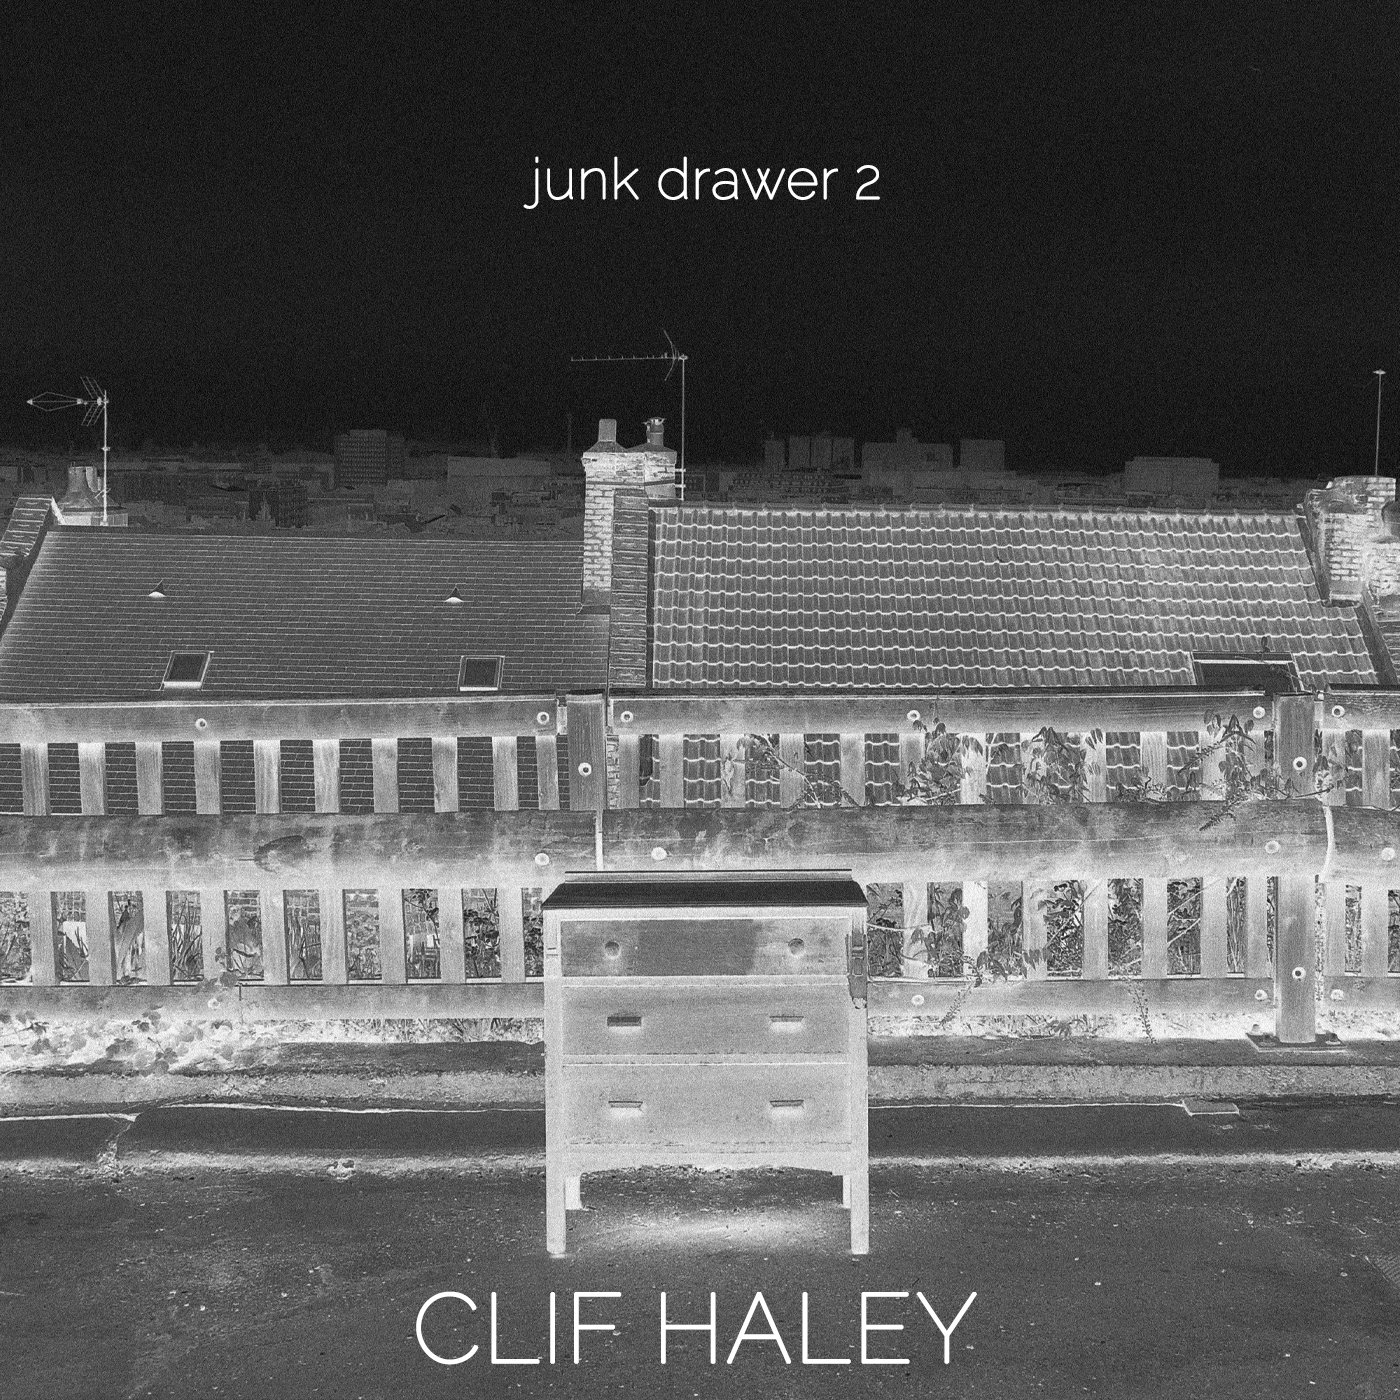 Junk Drawer 2 by Clif Haley